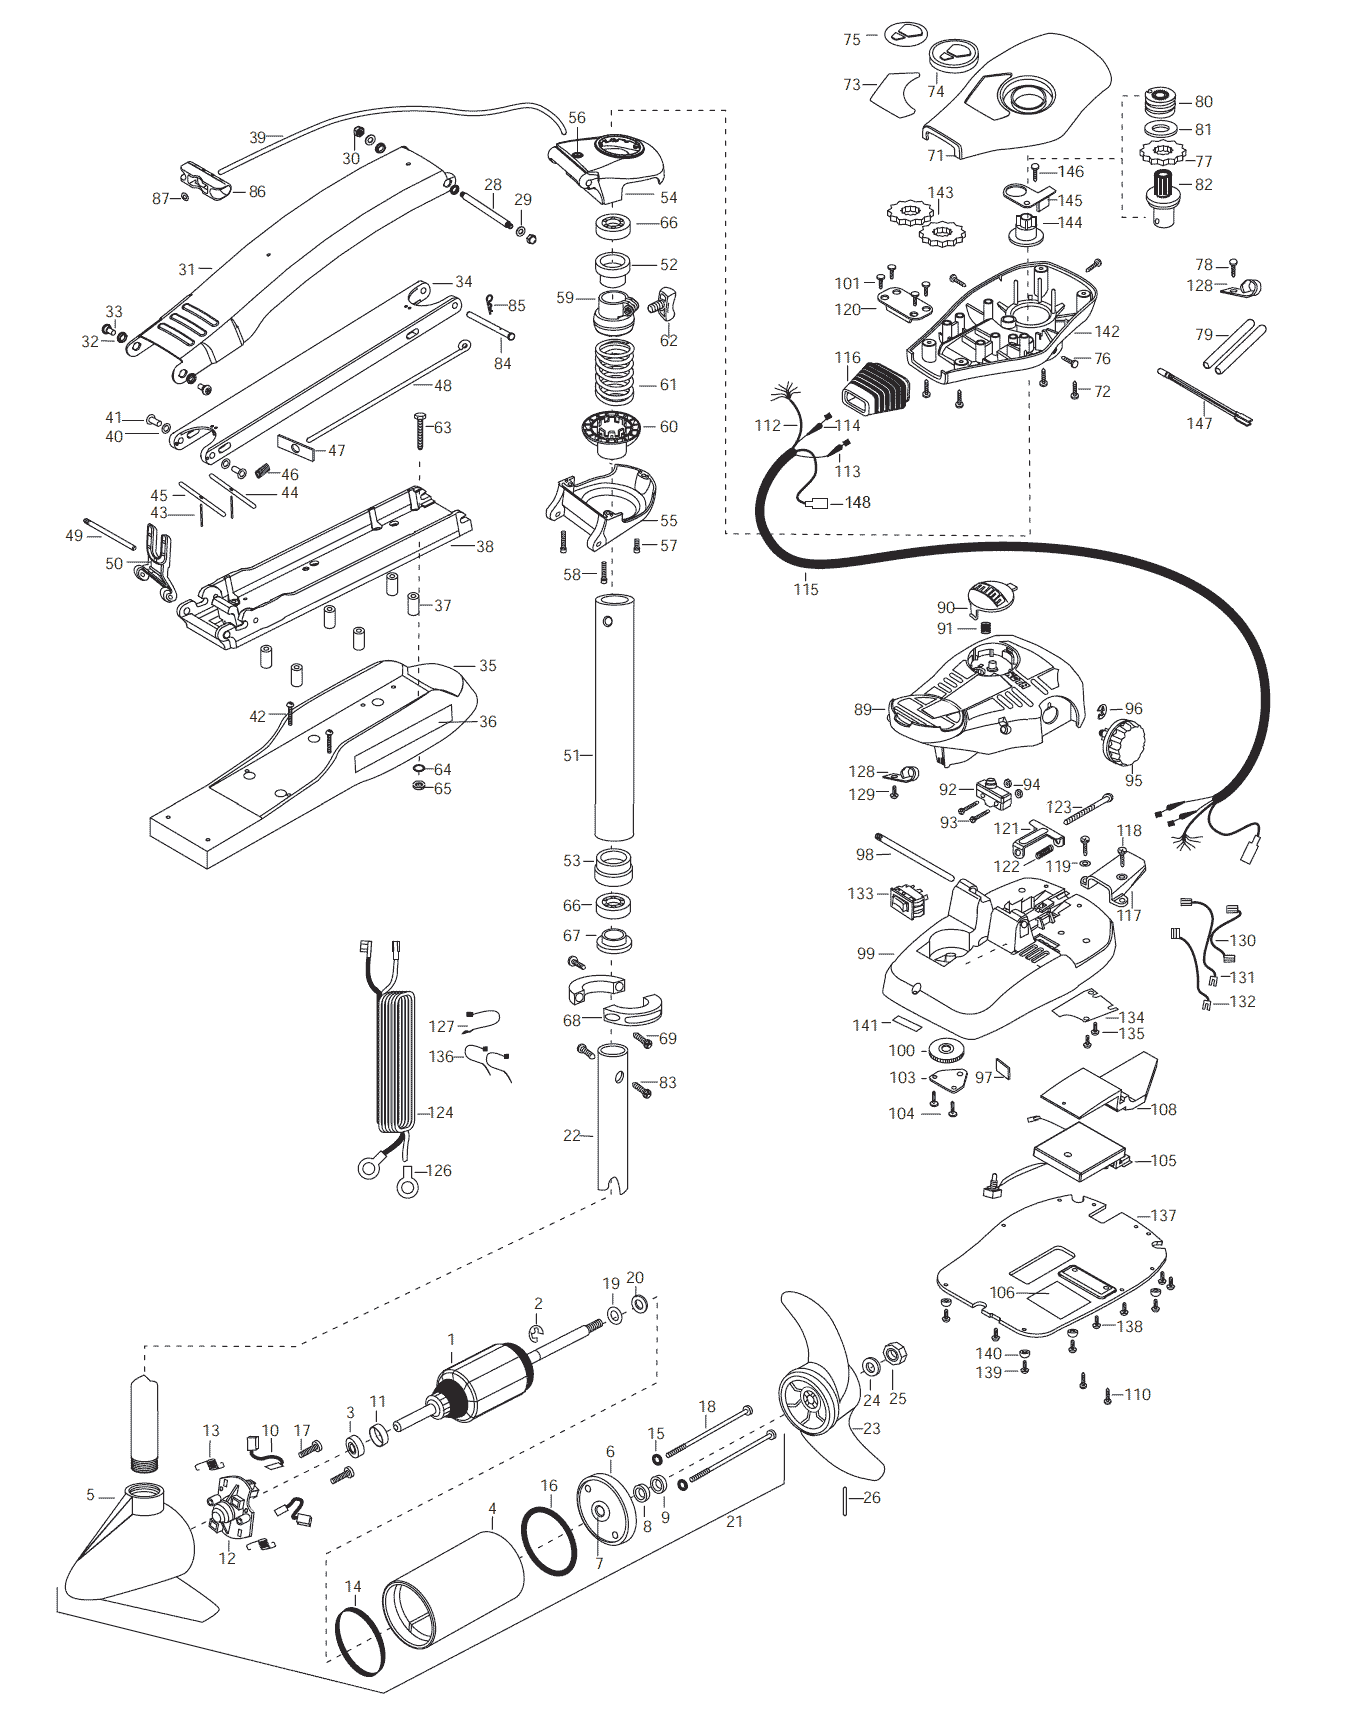 minn kota 24 volt wiring diagram basic trailer light 65 terrova